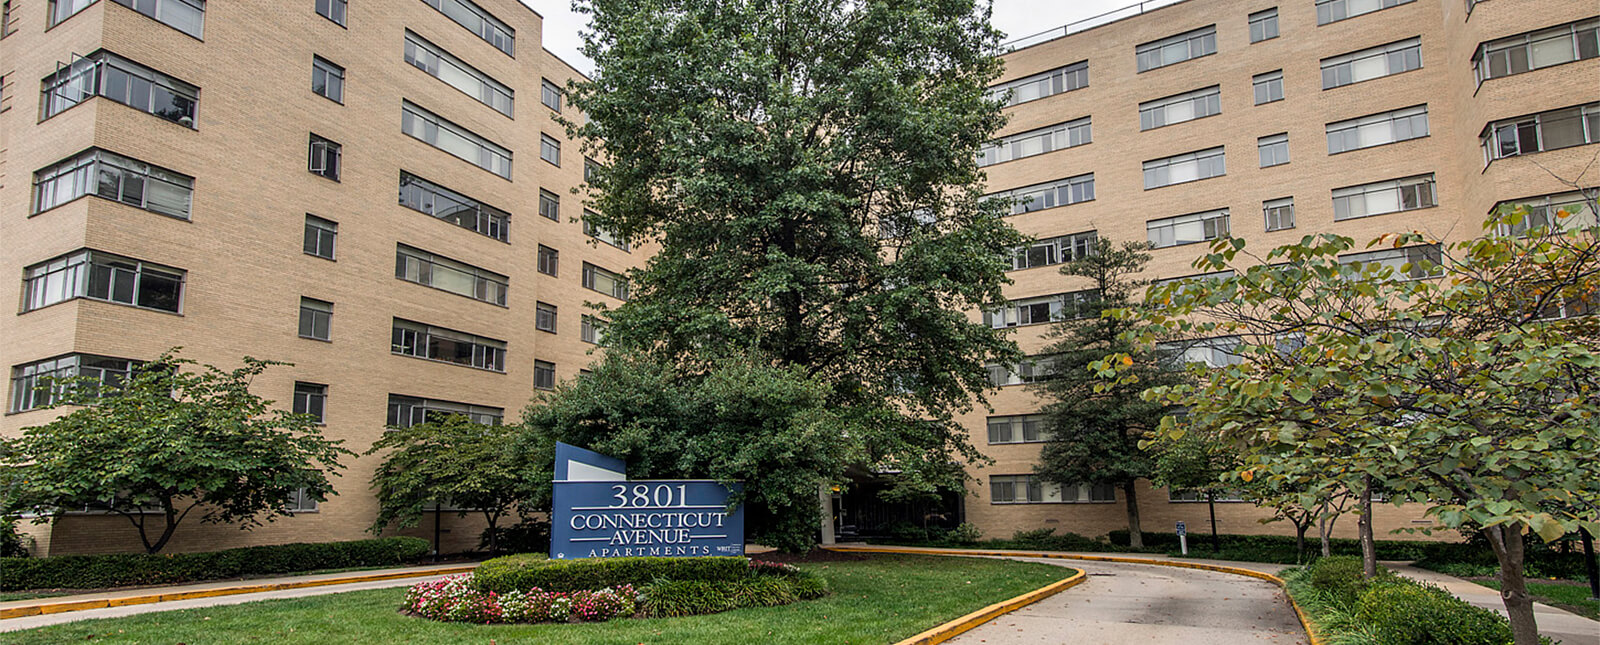 With A Host Of Amenities Right At Your Fingertips 3801 Connecticut Is True Northwest Dc Neighborhood Destination